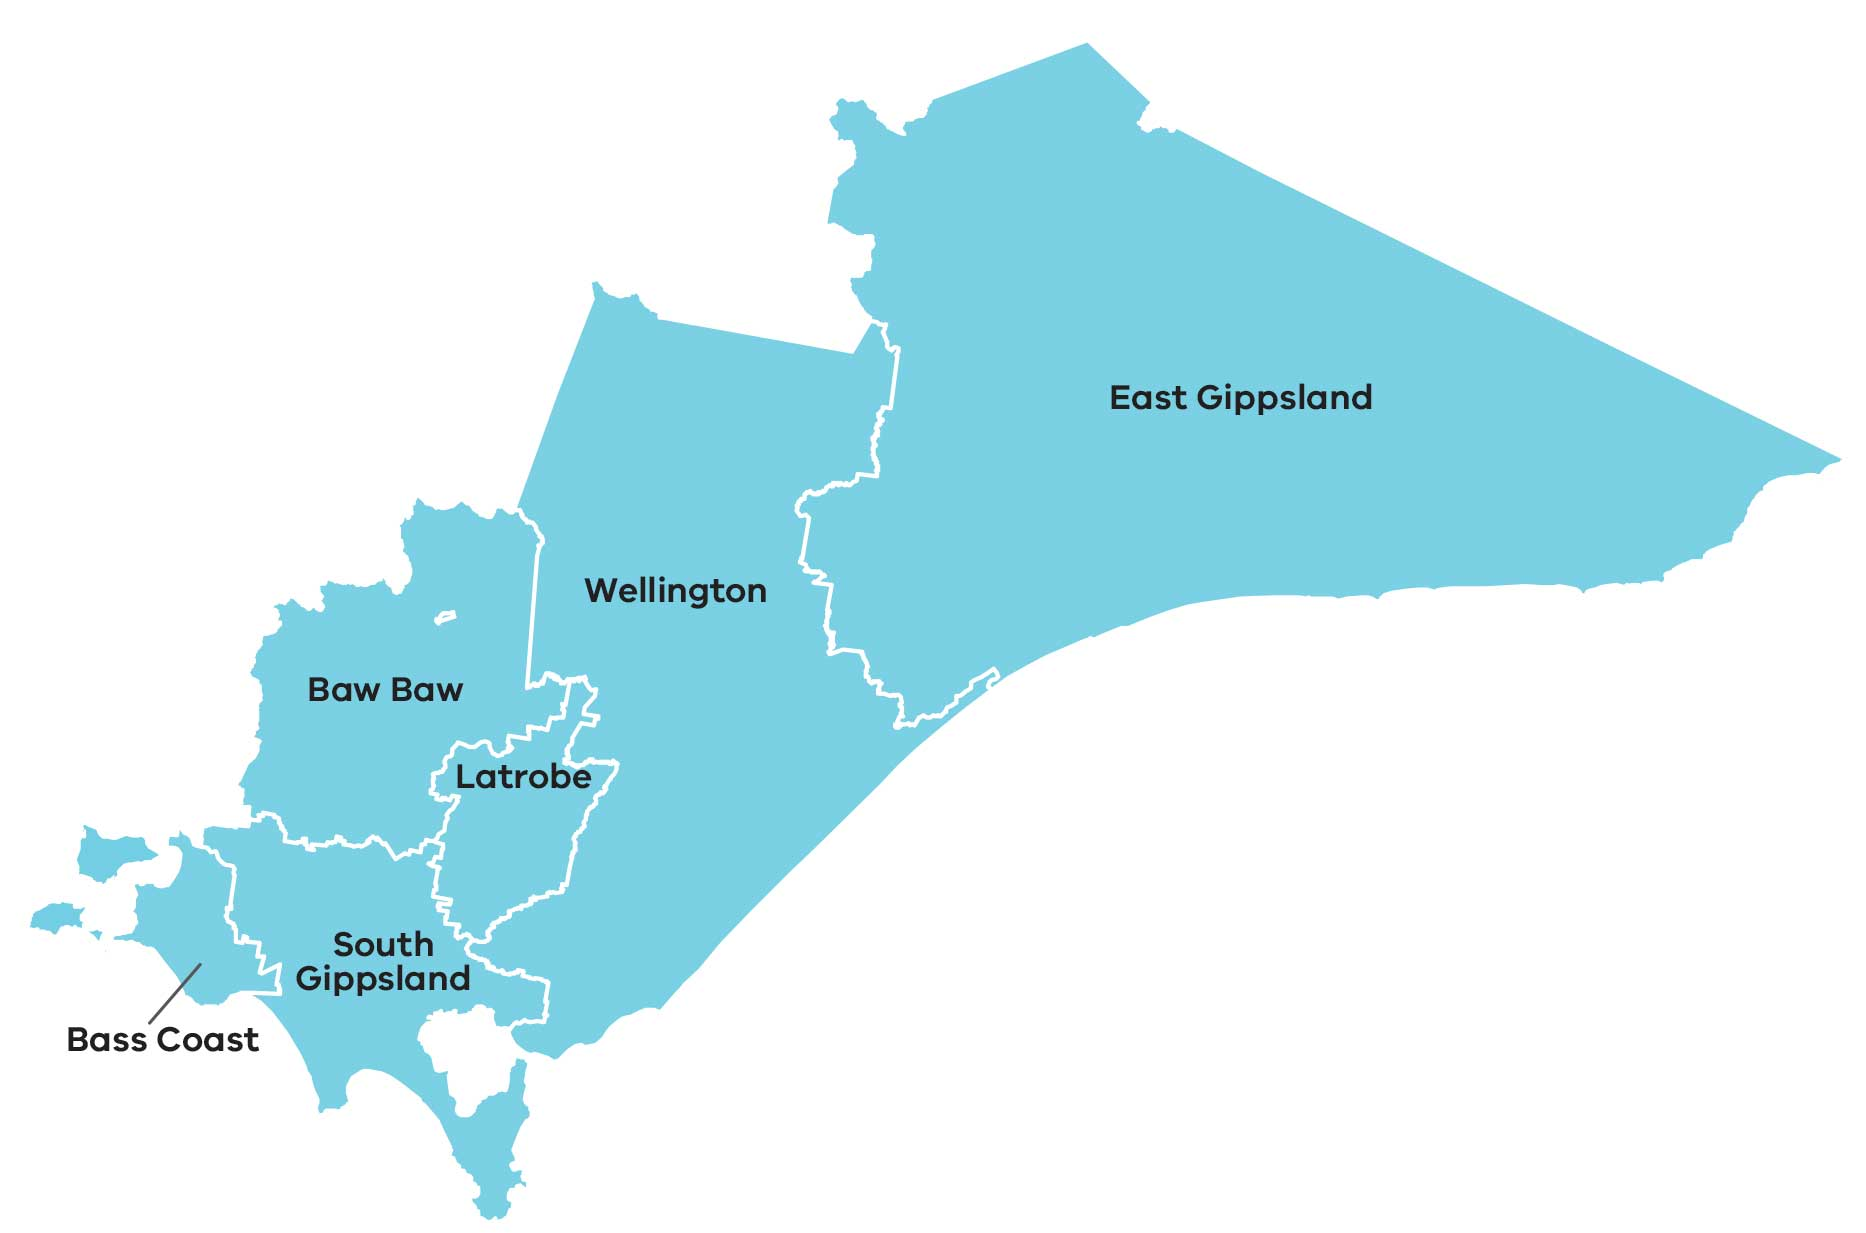 Map of Gippsland region in Victoria